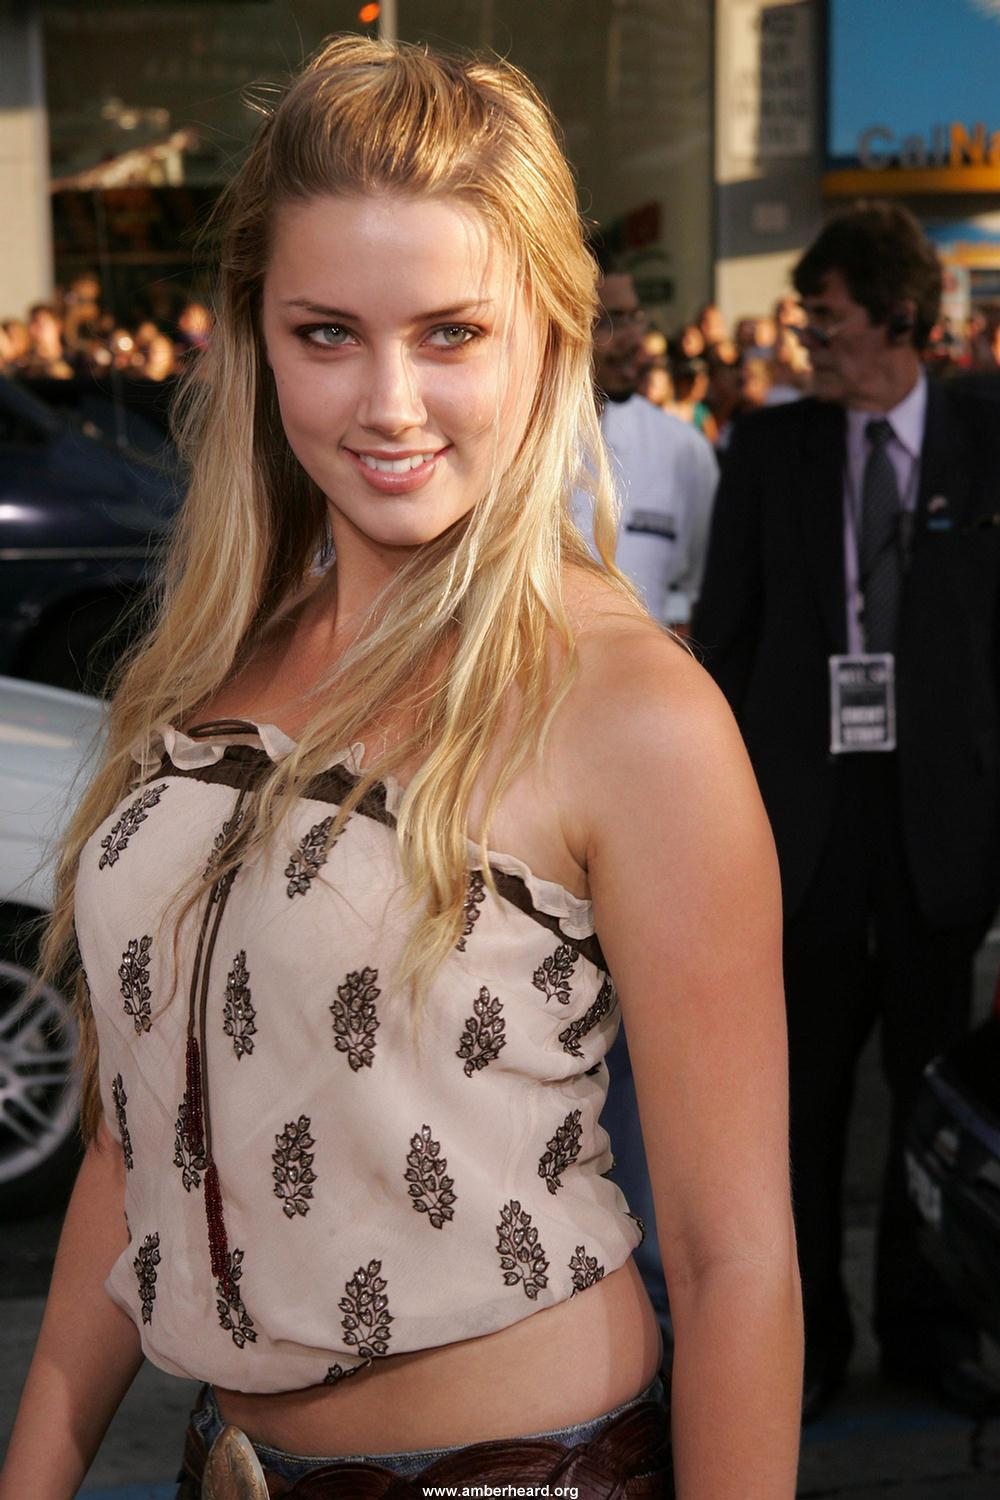 Amber Heard Topless Pics amber heard - page 13 pictures, naked, oops, topless, bikini